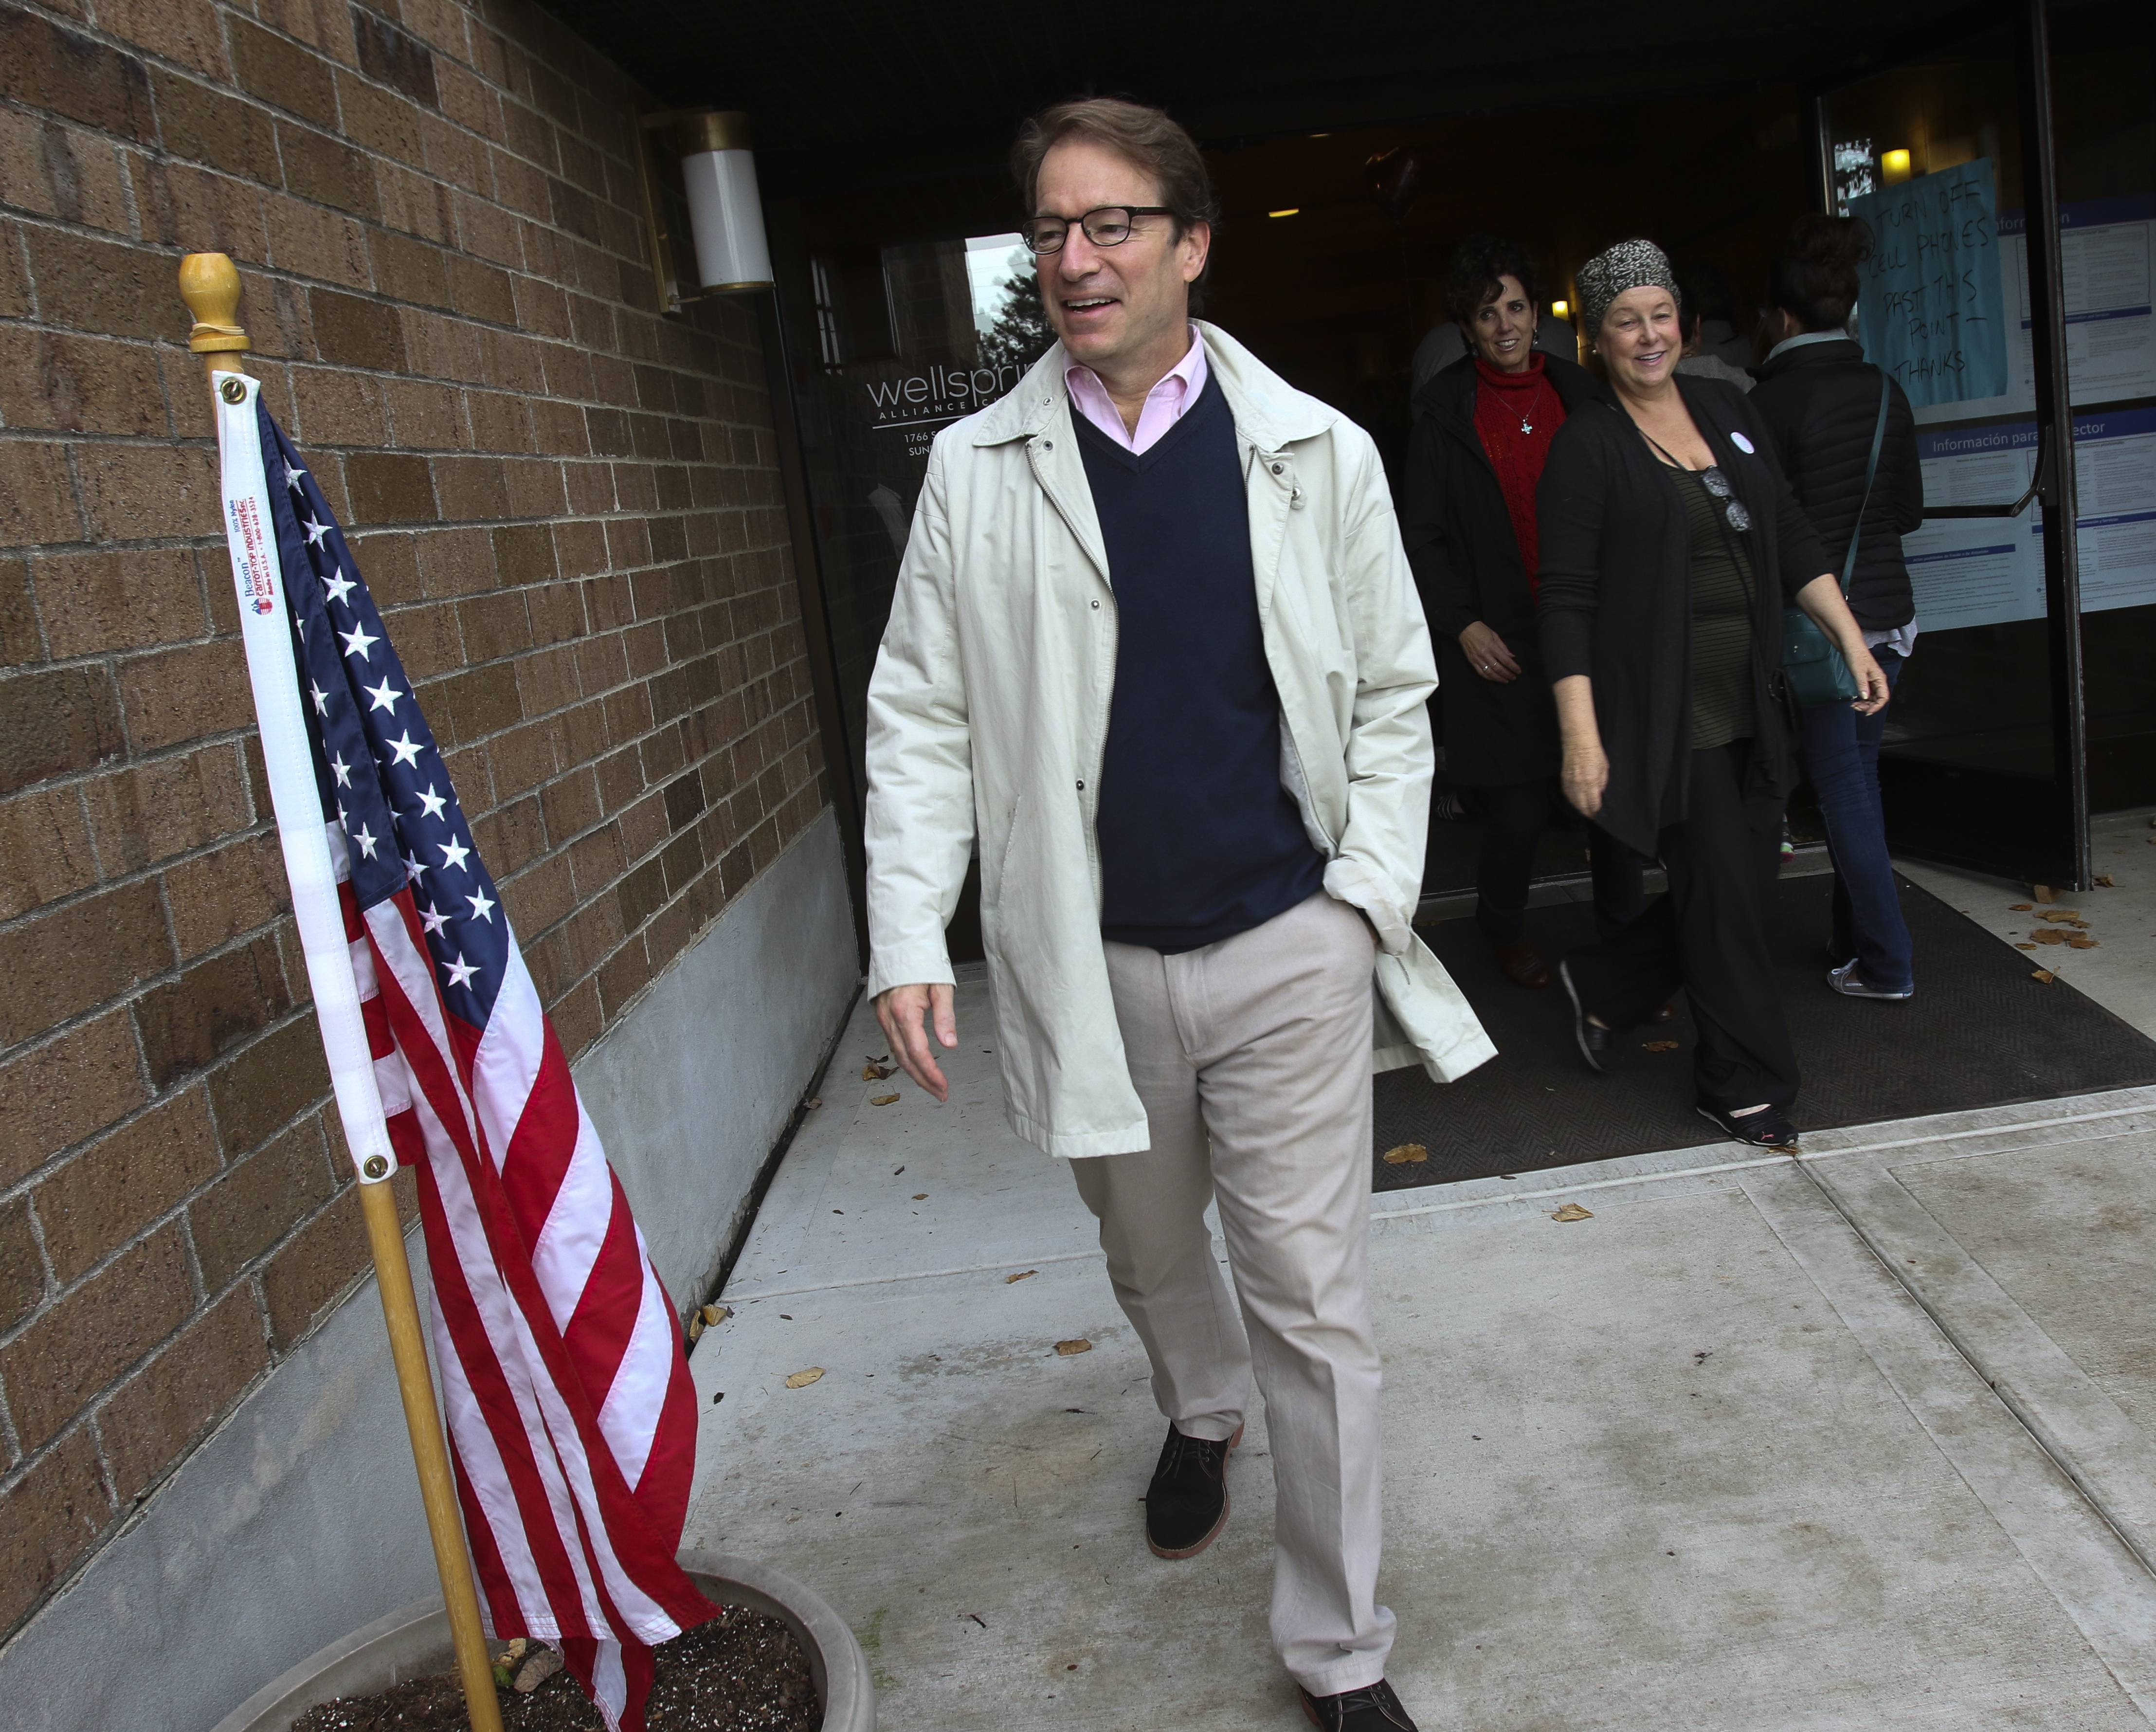 U.S. Rep. Peter Roskam, pictured after voting Tuesday in Wheaton, won his re-election bid against Democratic challenger Amanda Howland.